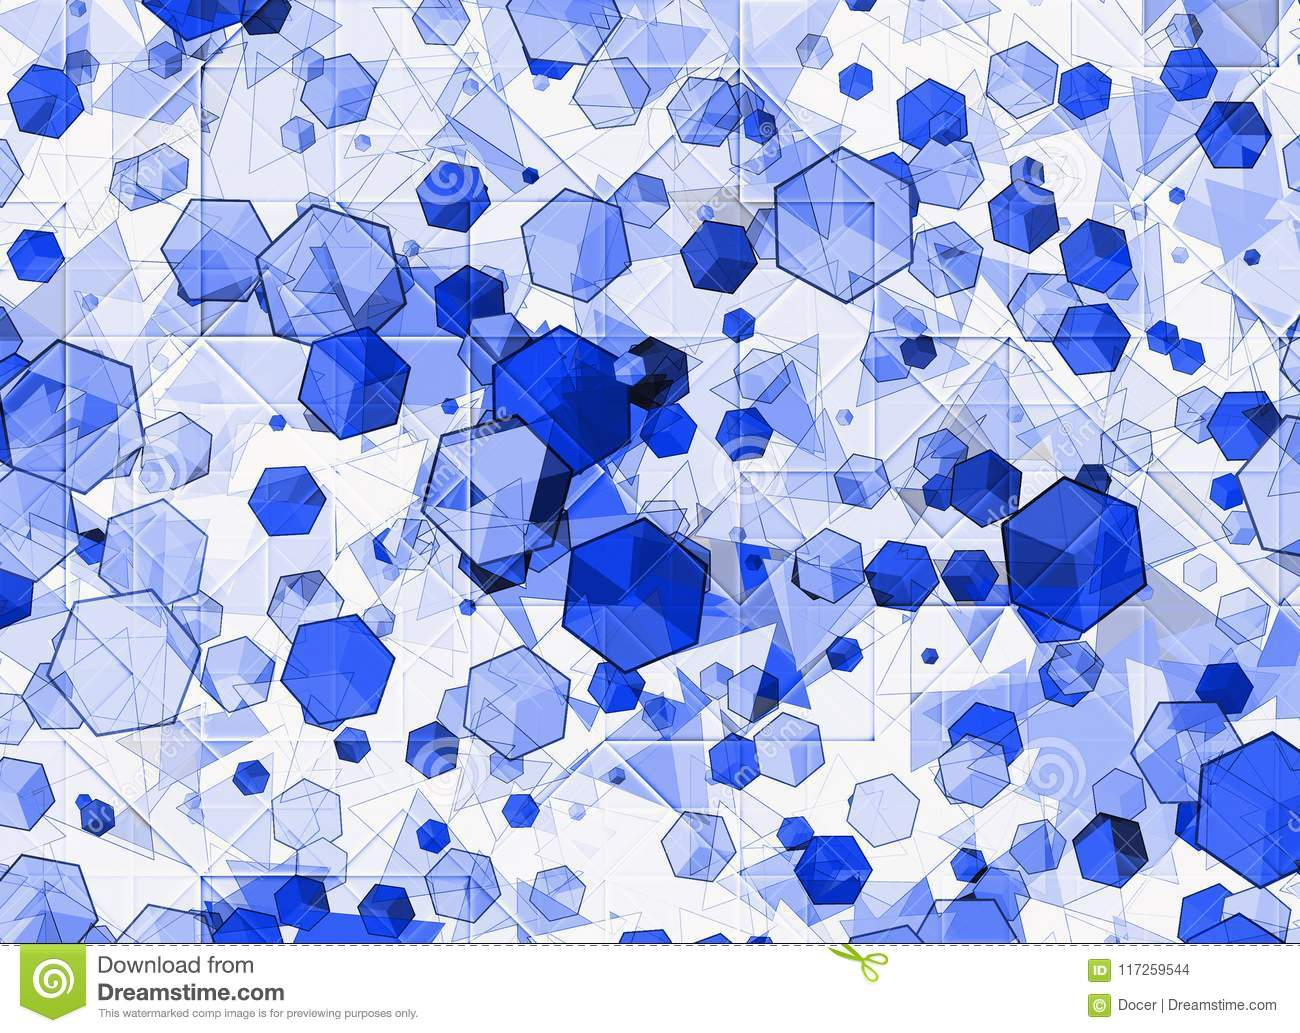 Many blue abstract geometric figures background